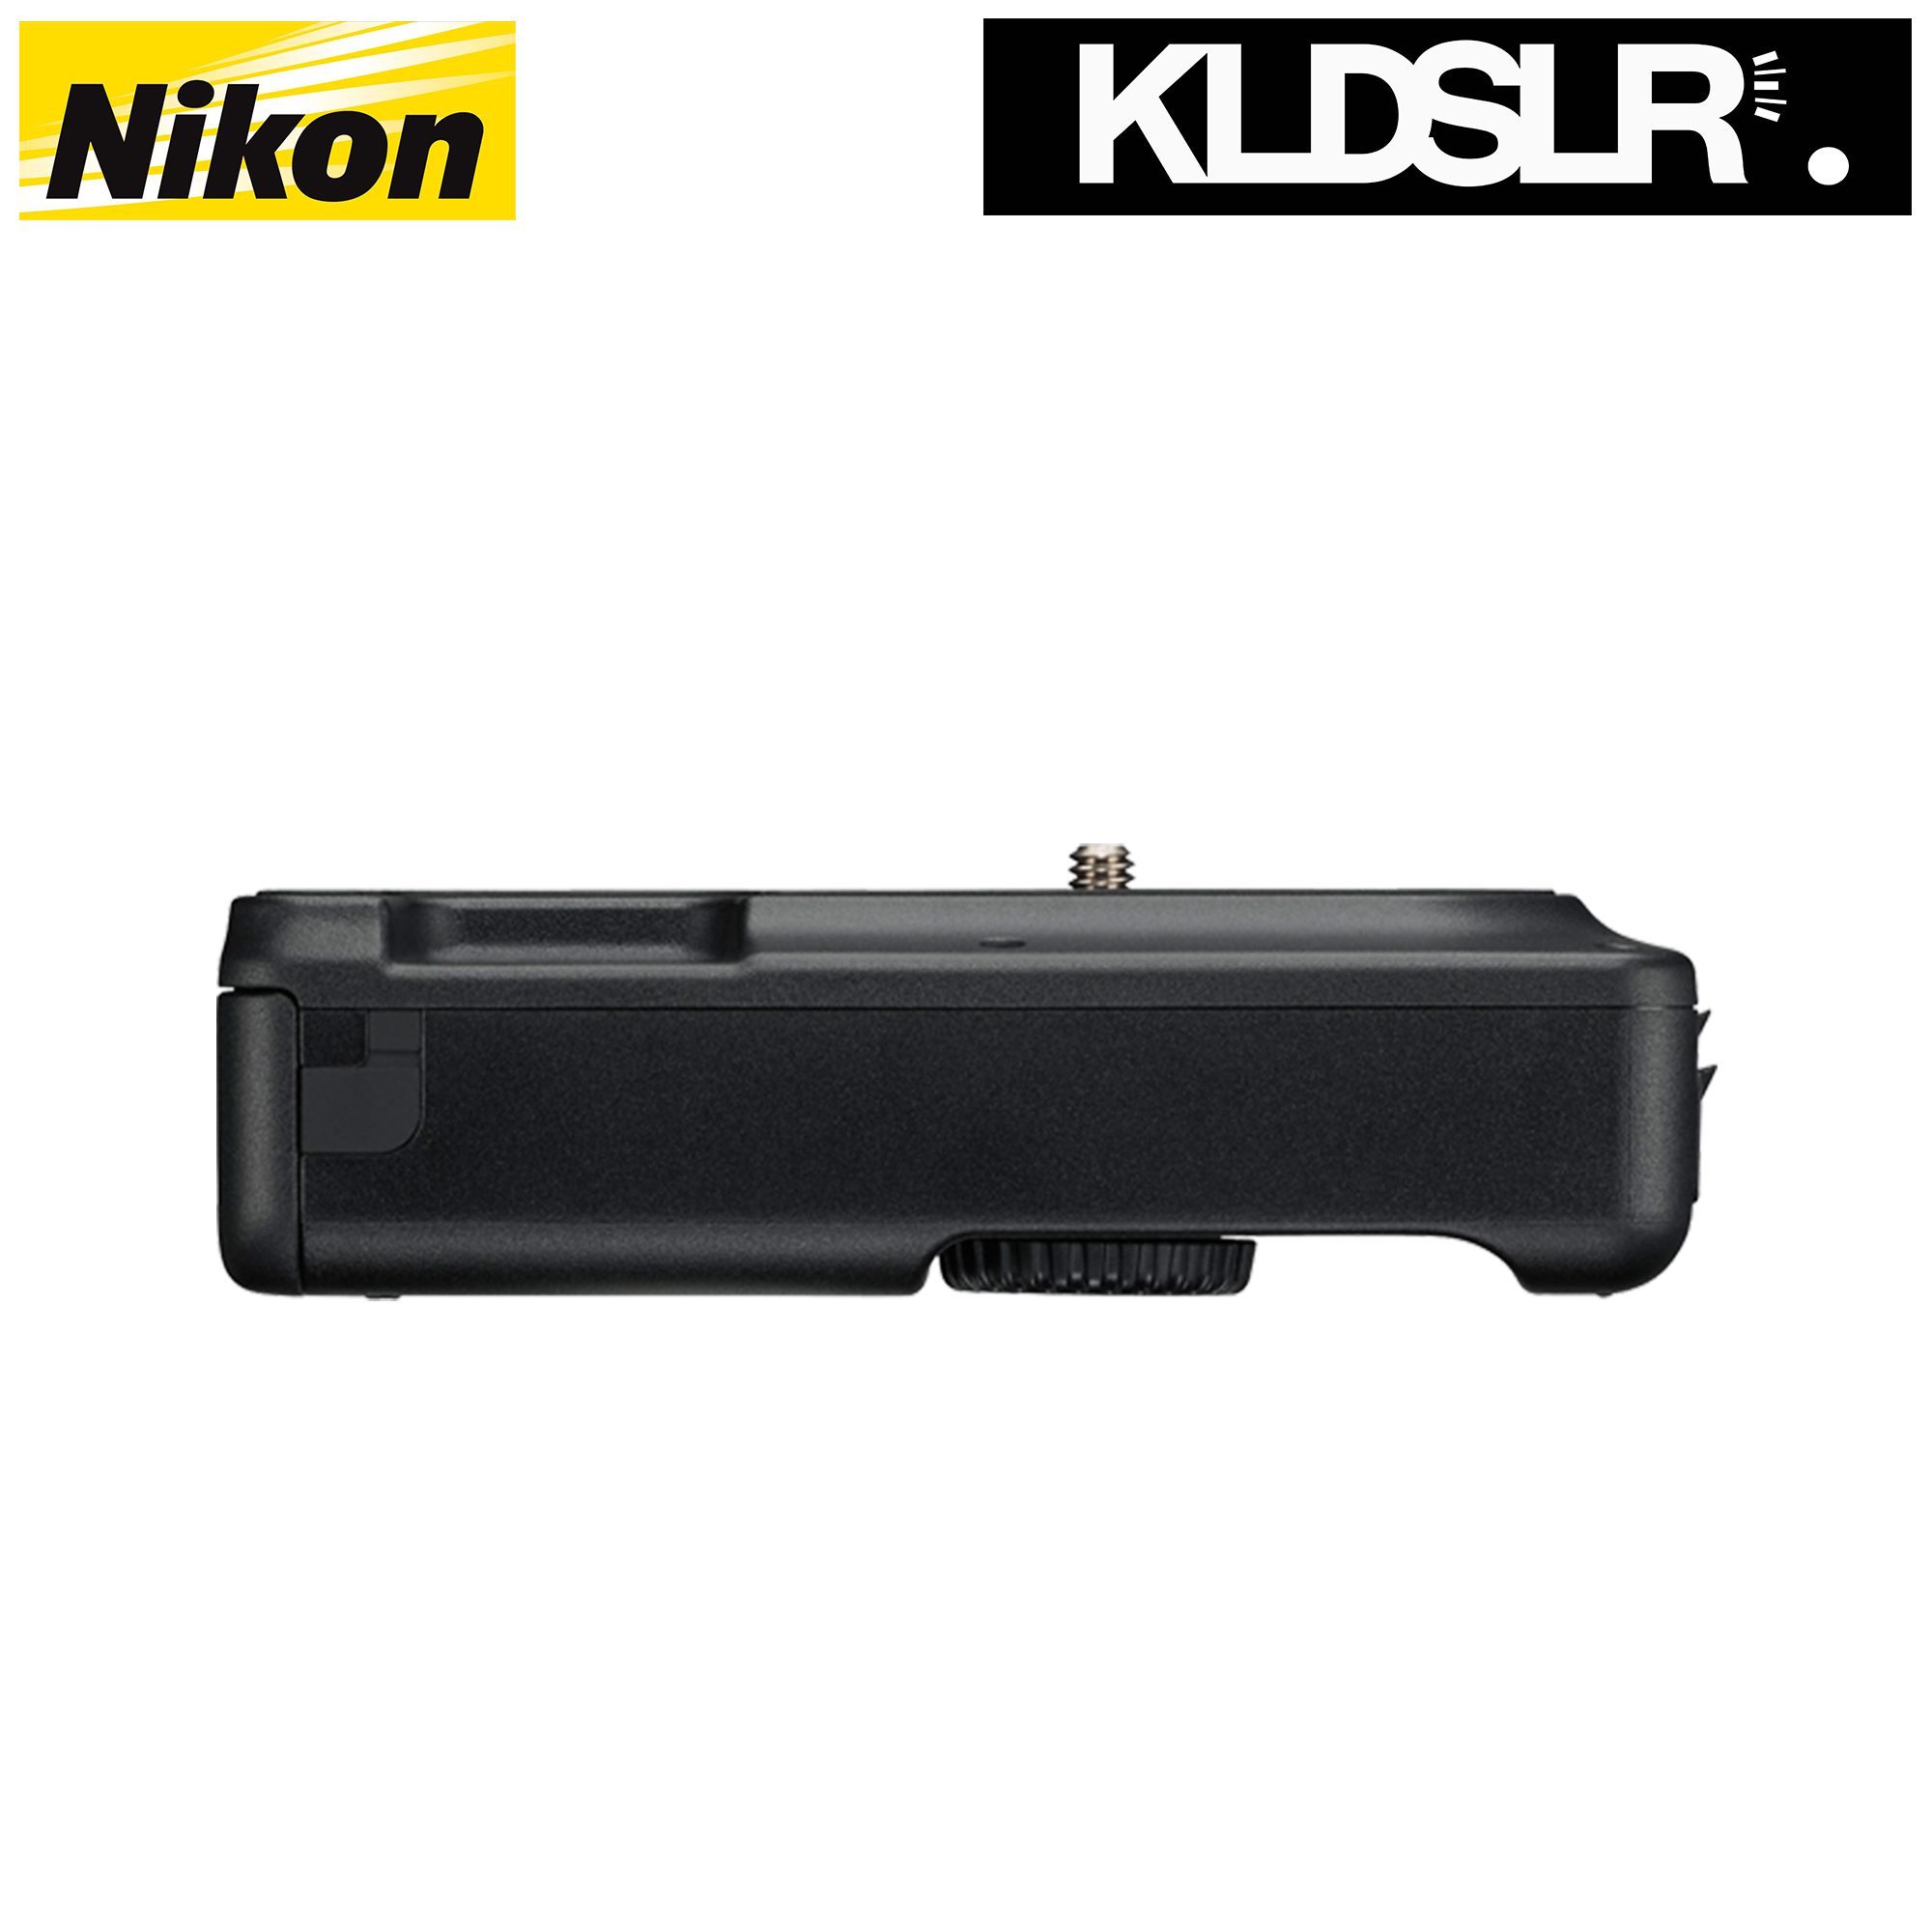 Nikon WT-7 Wireless Transmitter for Nikon D850 (Nikon Malaysia)